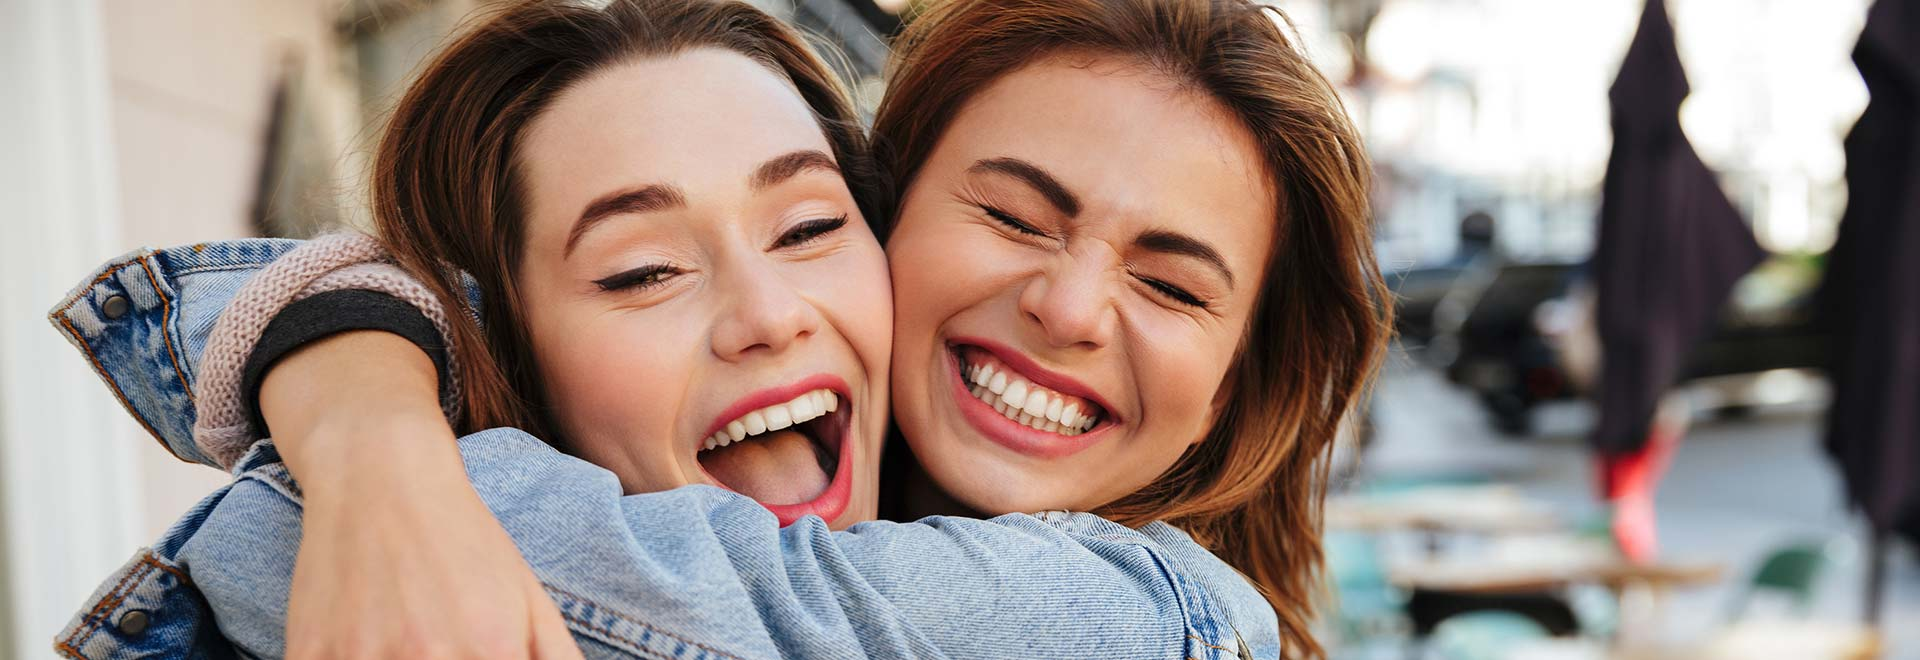 Close up photo of laughing women.